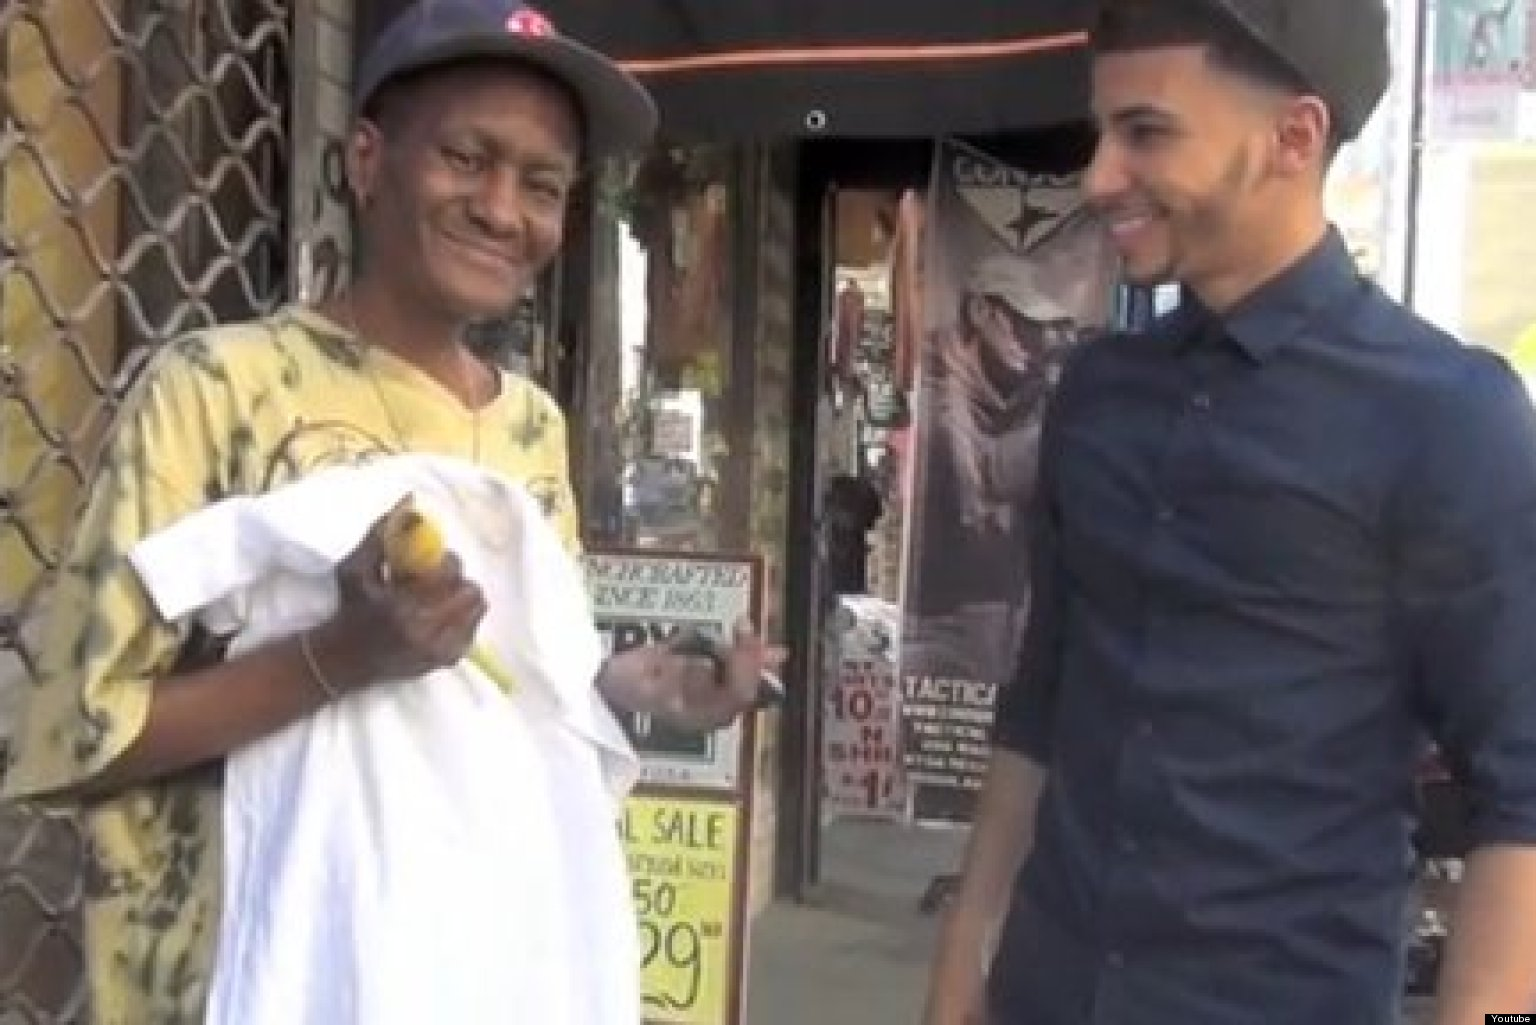 Make The Homeless Smile Pranksters True Story Asa Make Heartwarming Video Giving To Those In